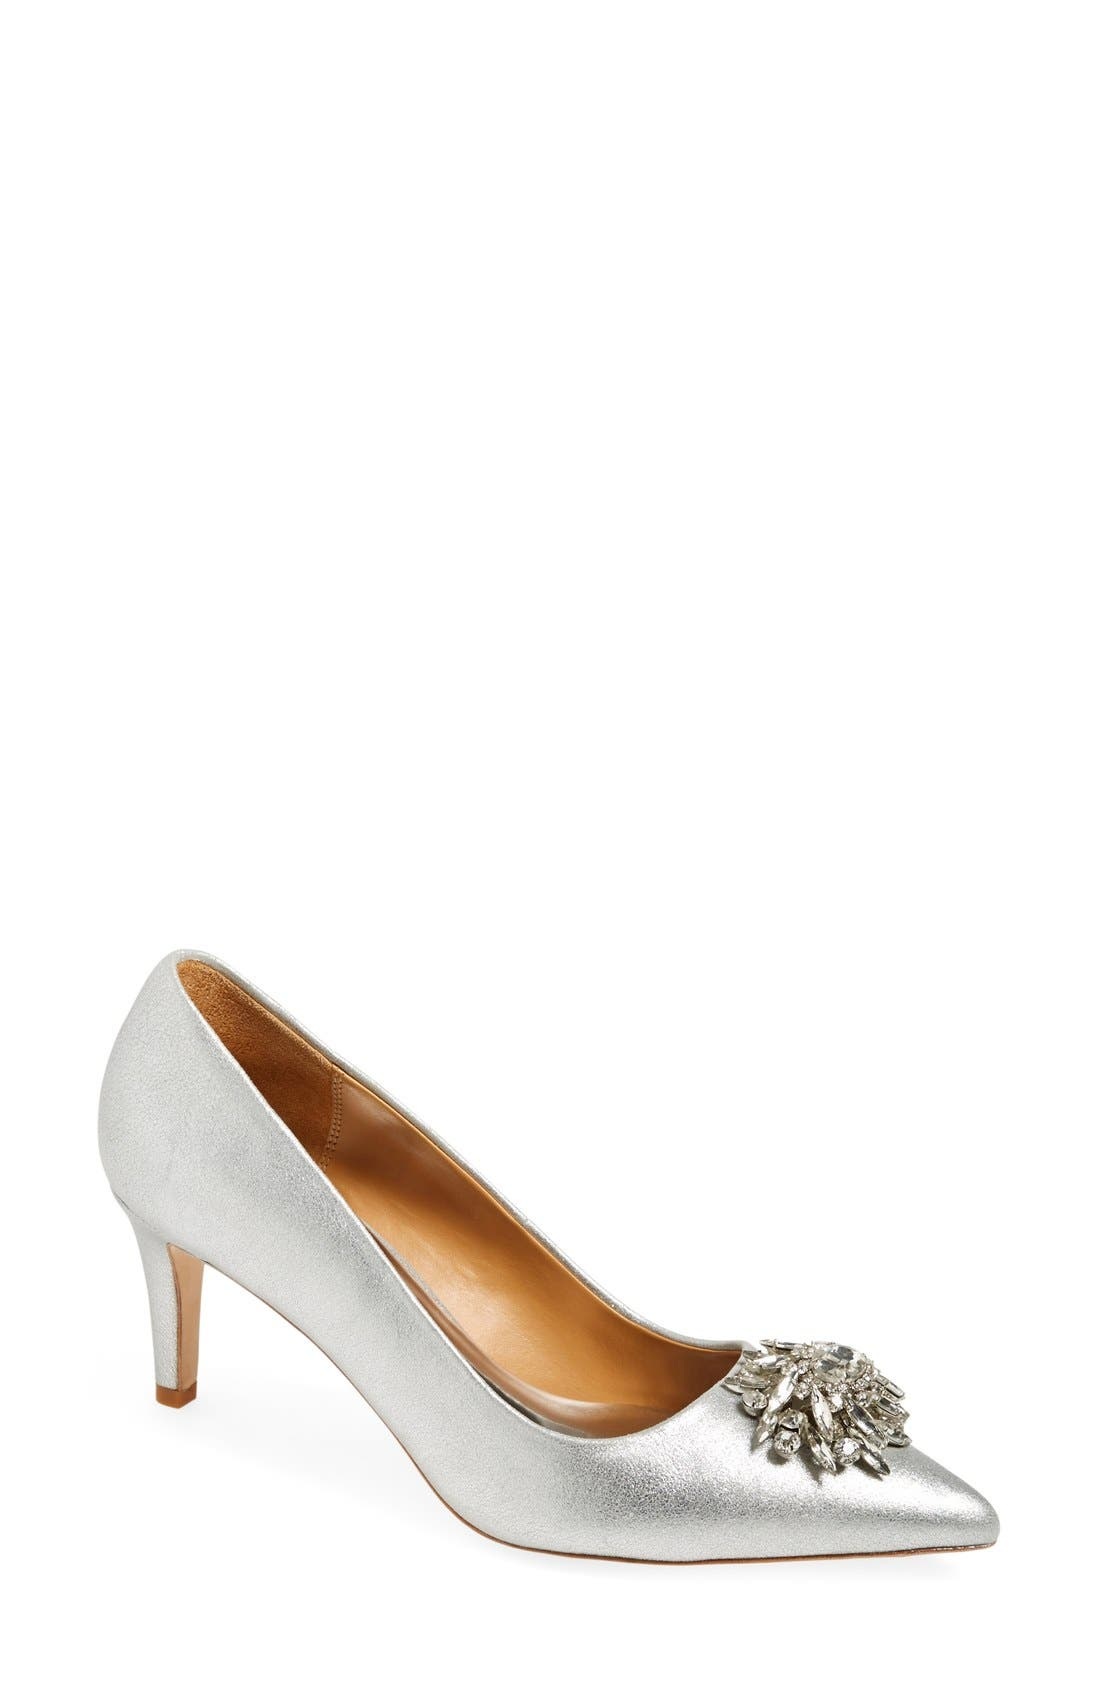 Alternate Image 1 Selected - Badgley Mischka 'Gardenia' Pointy Toe Pump (Women)